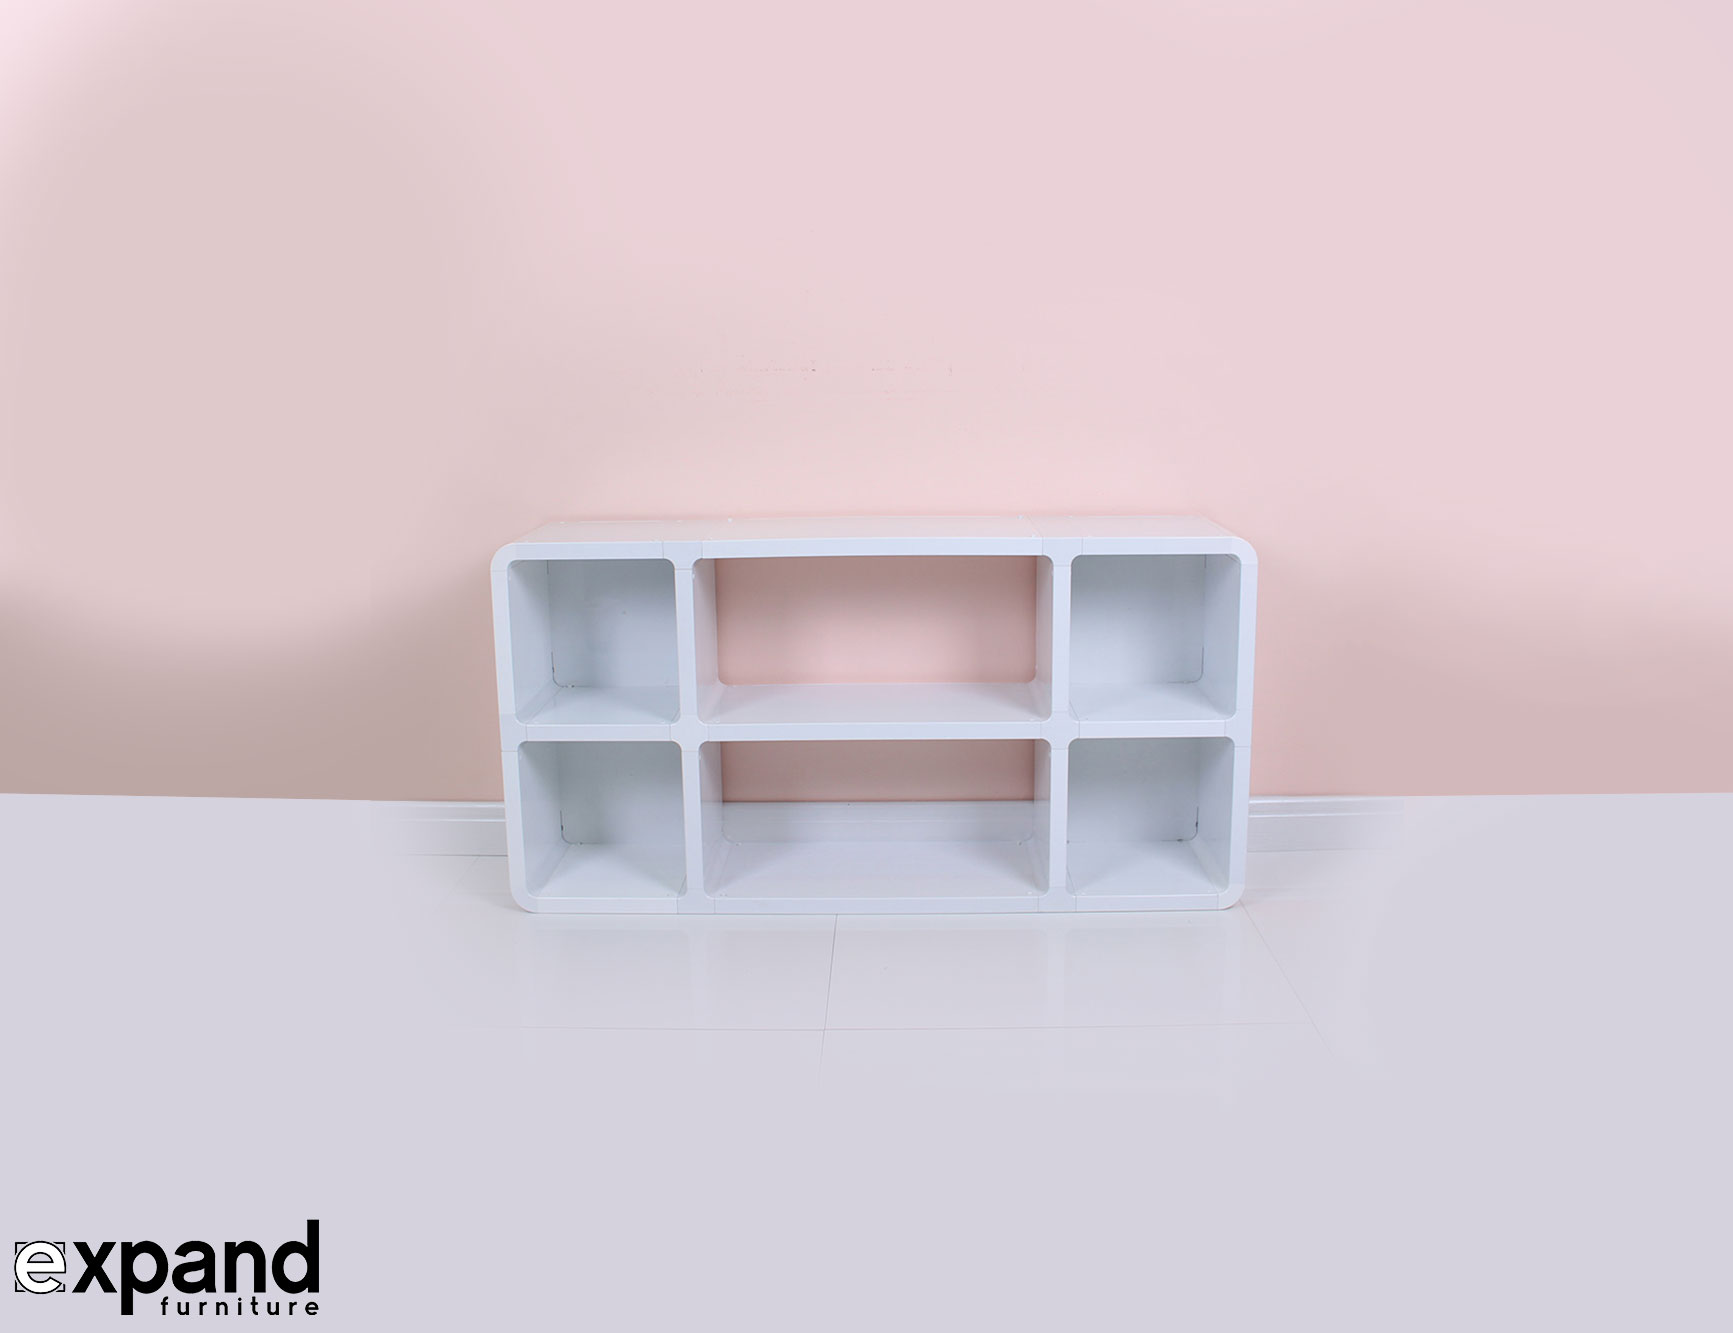 Slim Modern Tv Stand Expand Furniture # Meuble Tv Ultra Compact